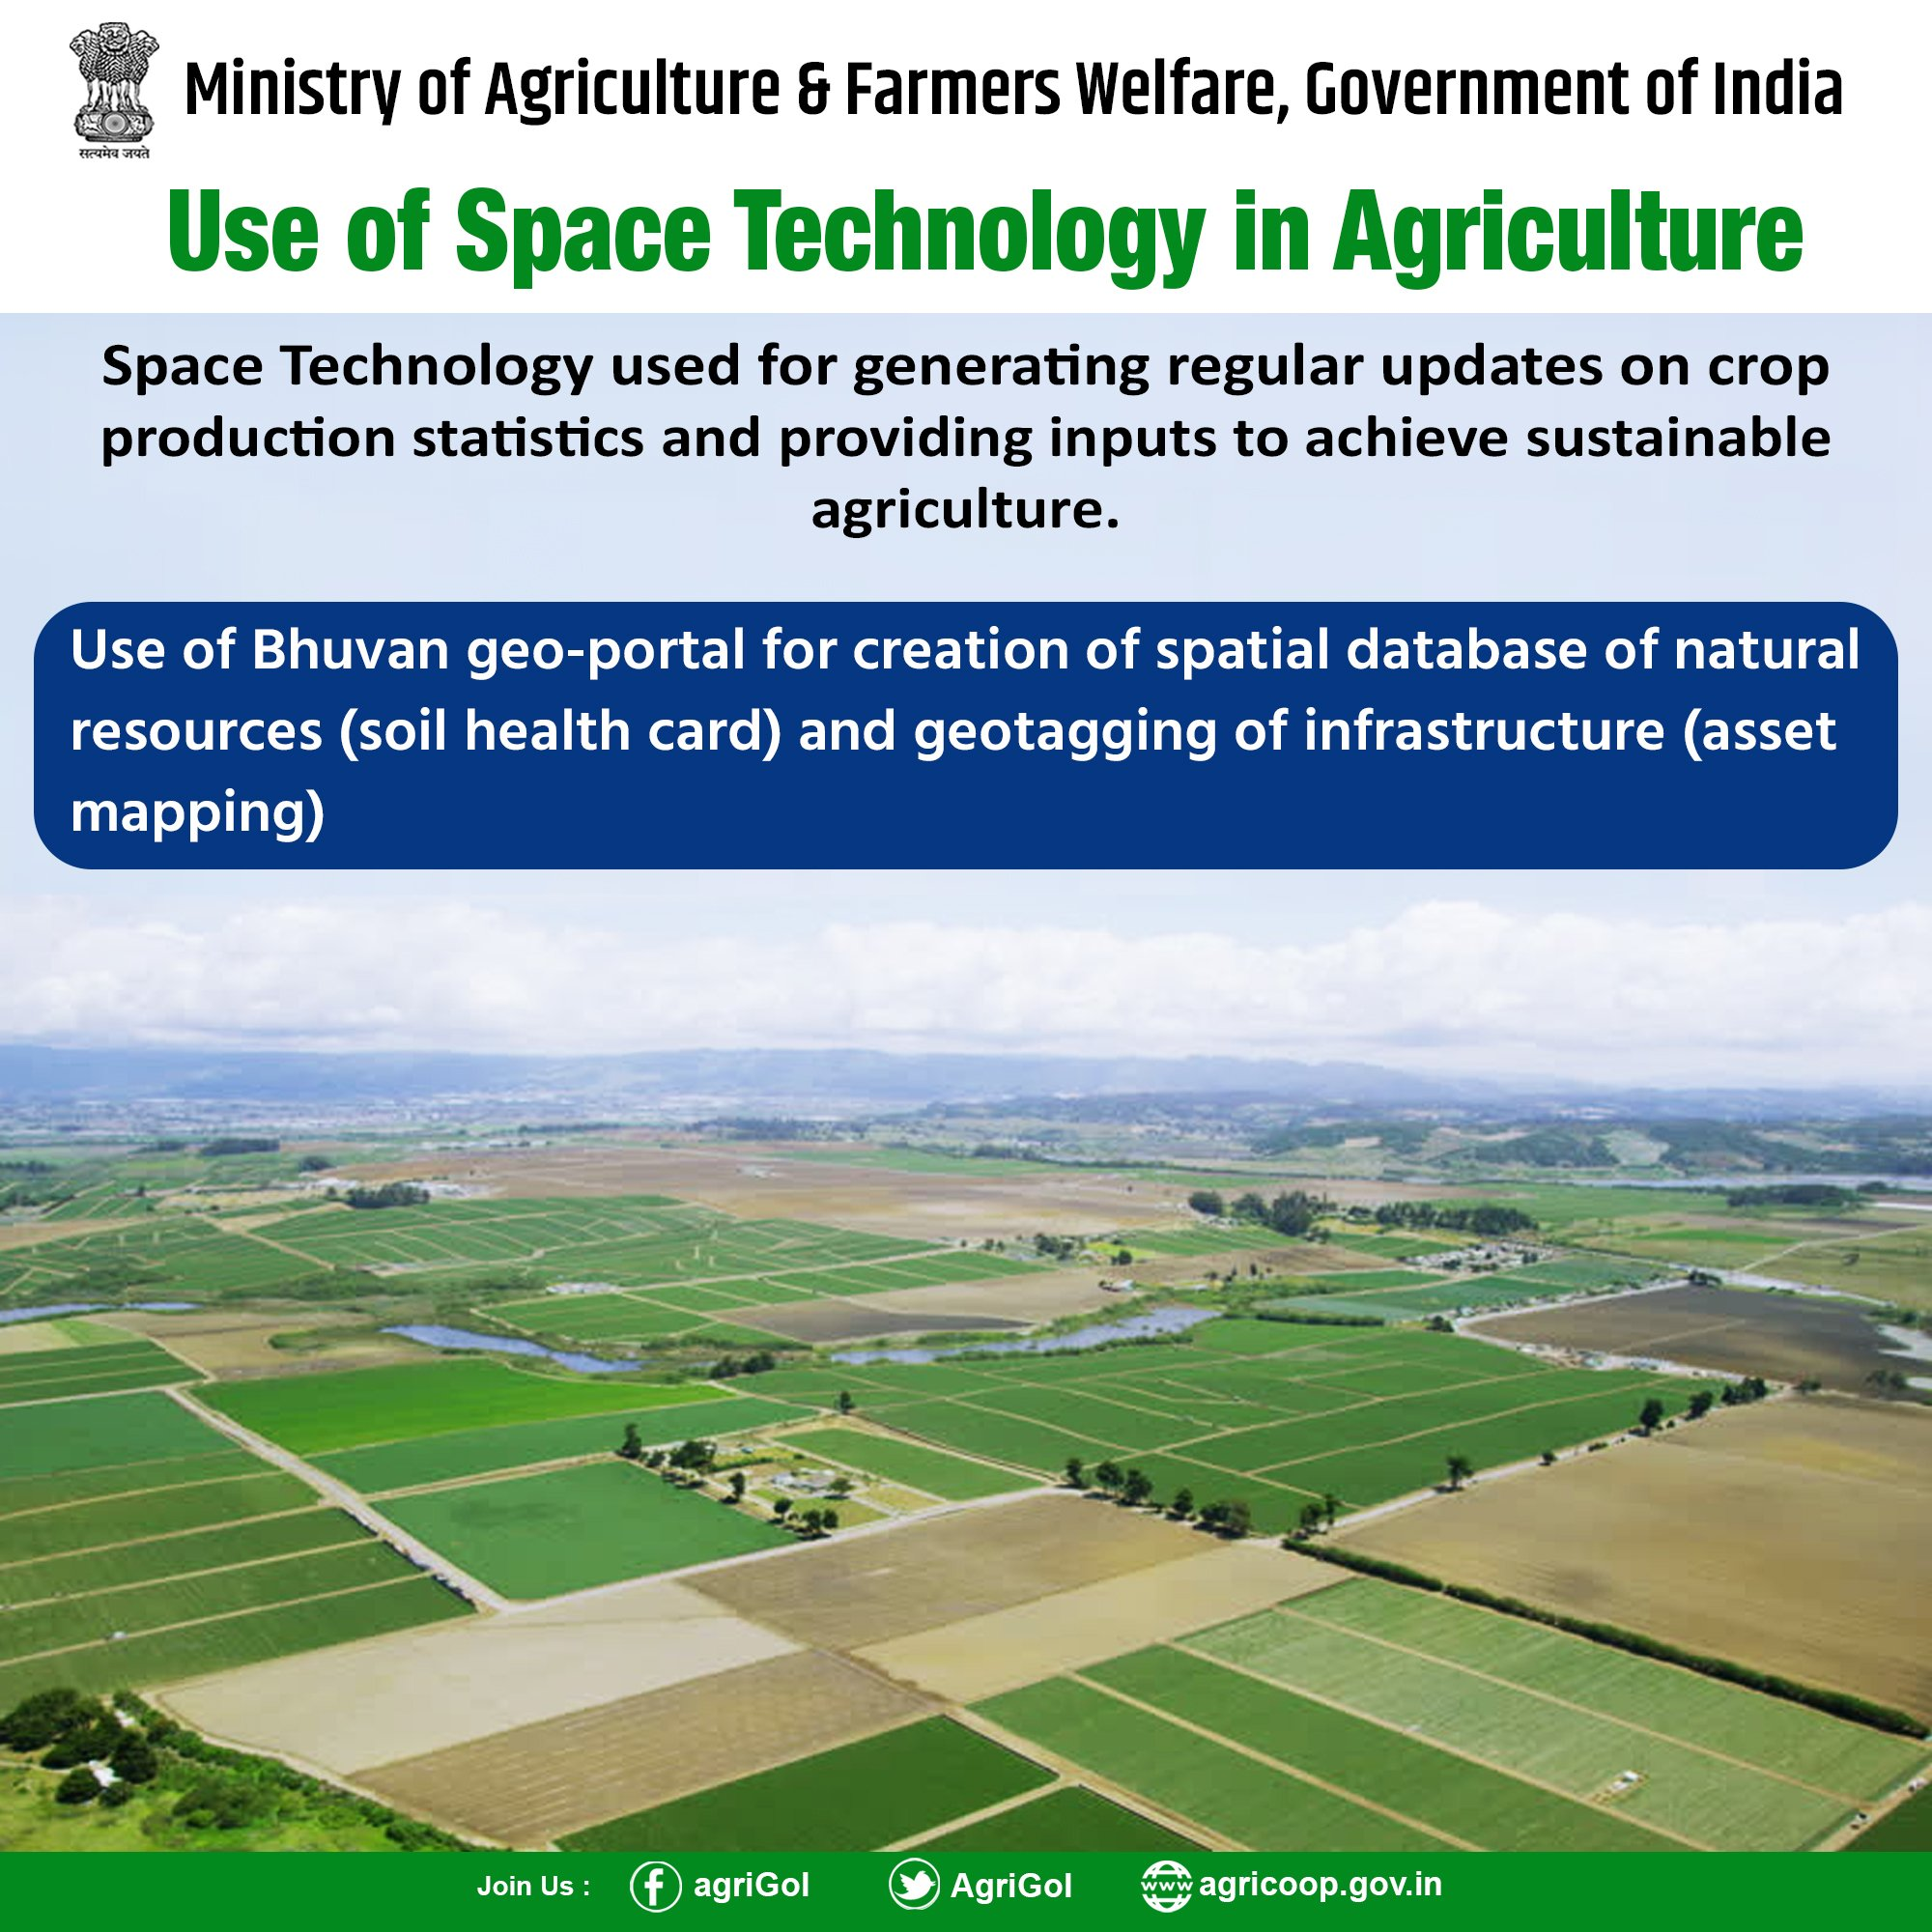 Agriculture INDIA on Twitter: